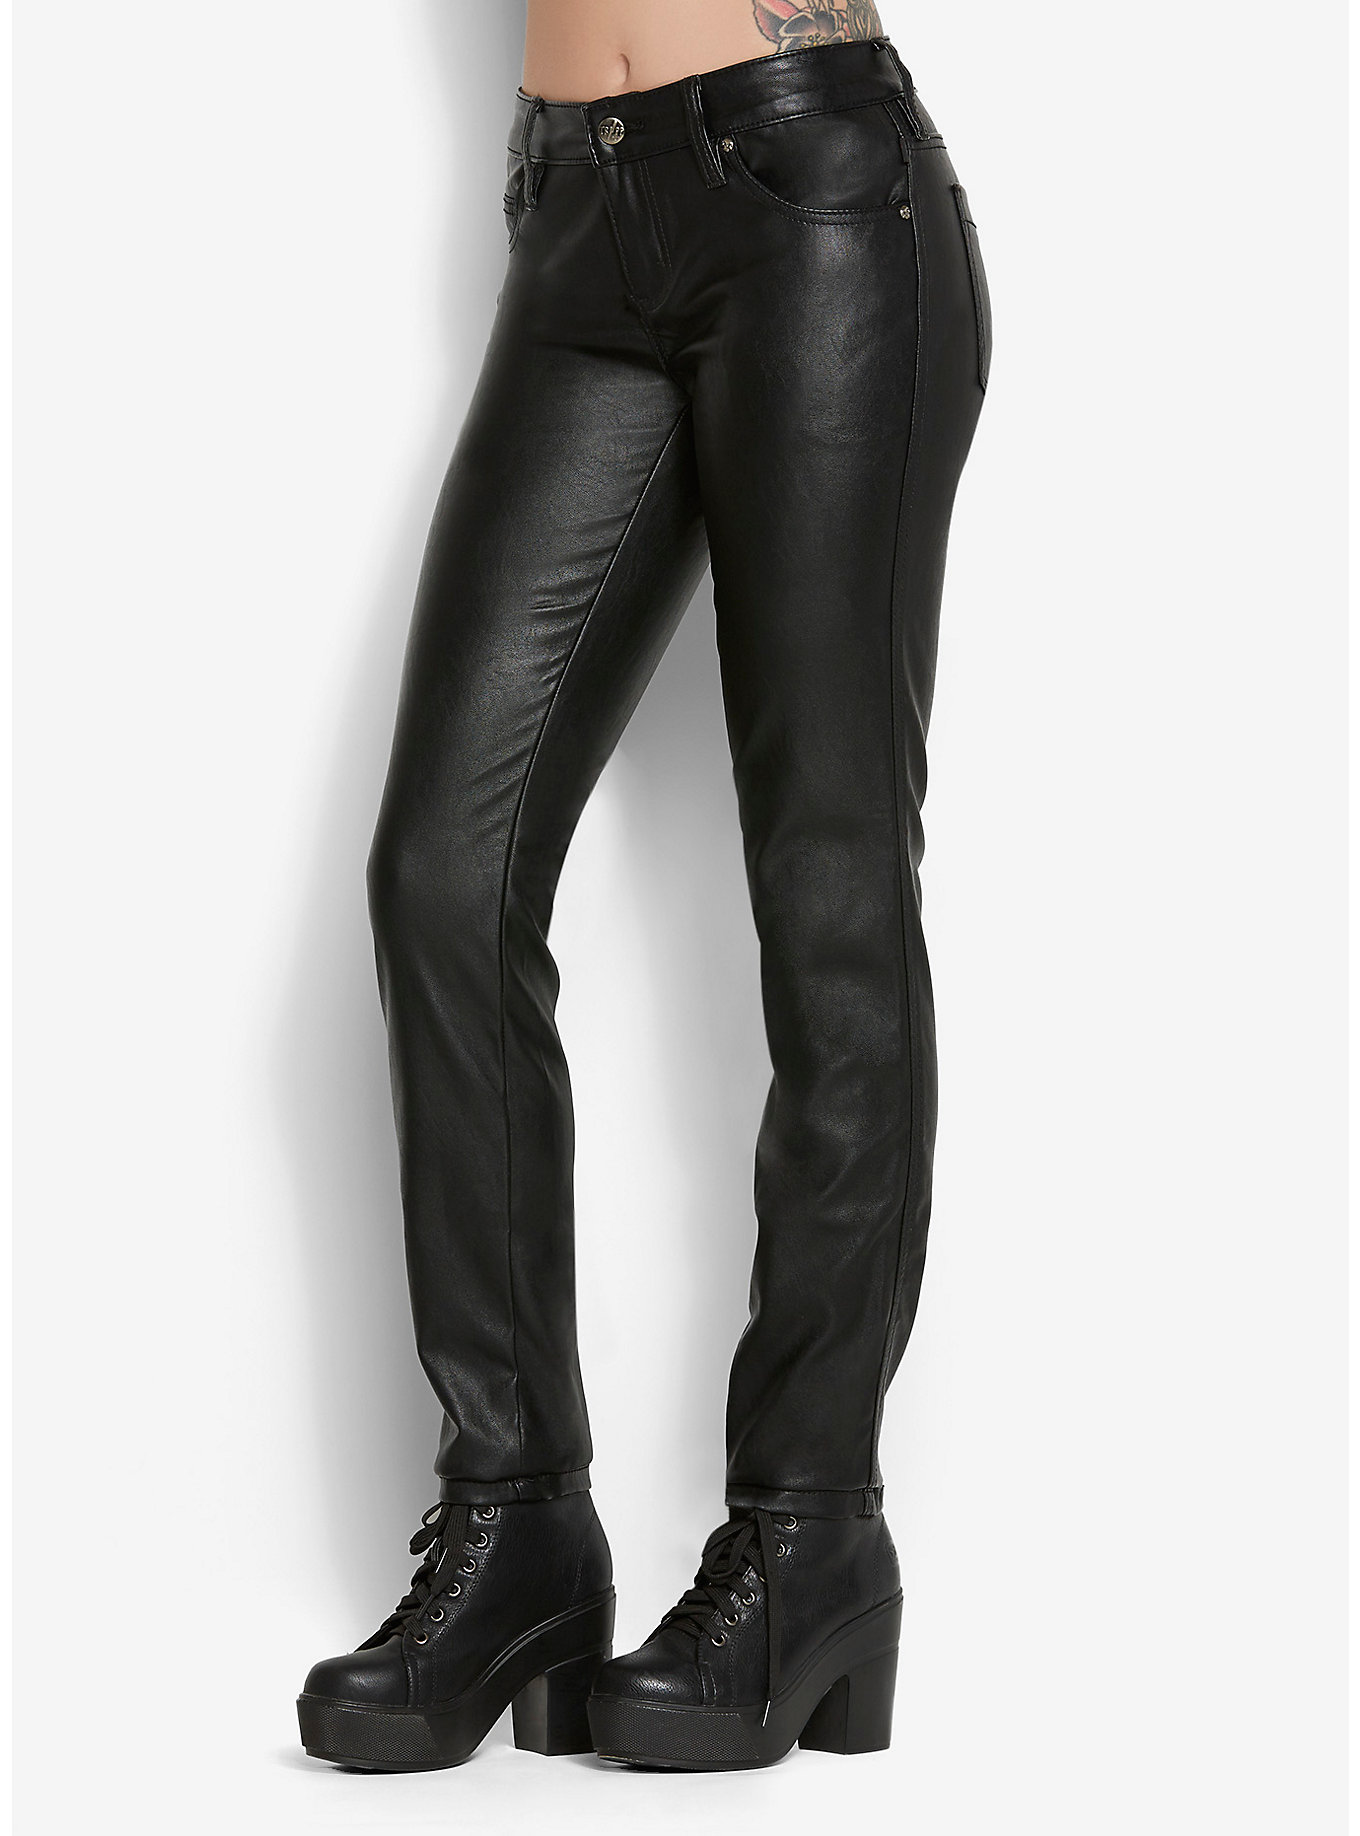 Faux Leather Pants, $51 at  Hot Topic